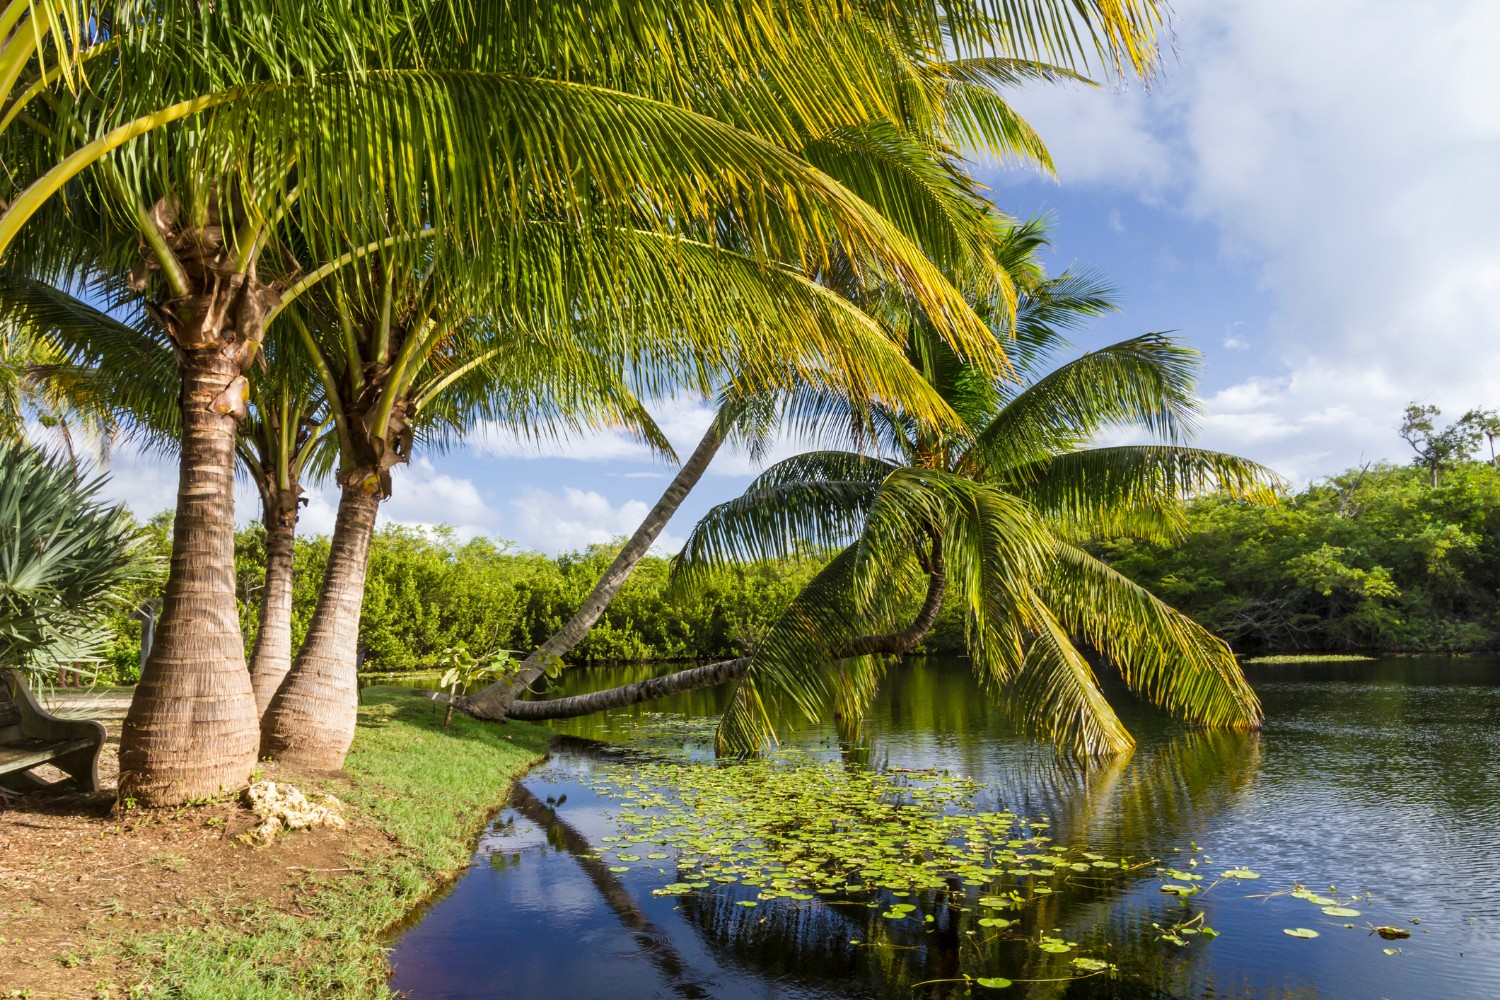 Palm trees beside a pond a pond in Queen Elizabeth II Botanic Park on Grand Cayman, Cayman Islands